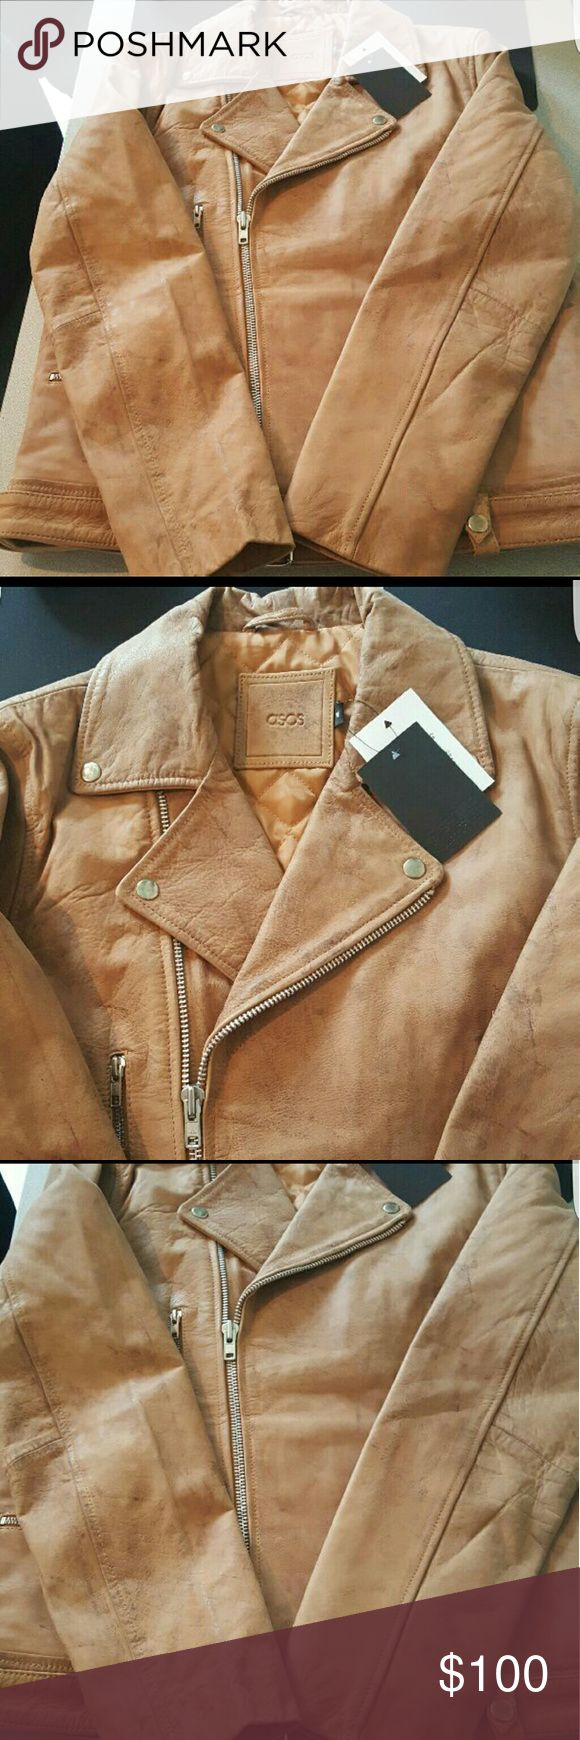 Woman's ASOS leather jacket medium Brand new never been worn has tags size medium ASOS Jackets & Coats Utility Jackets